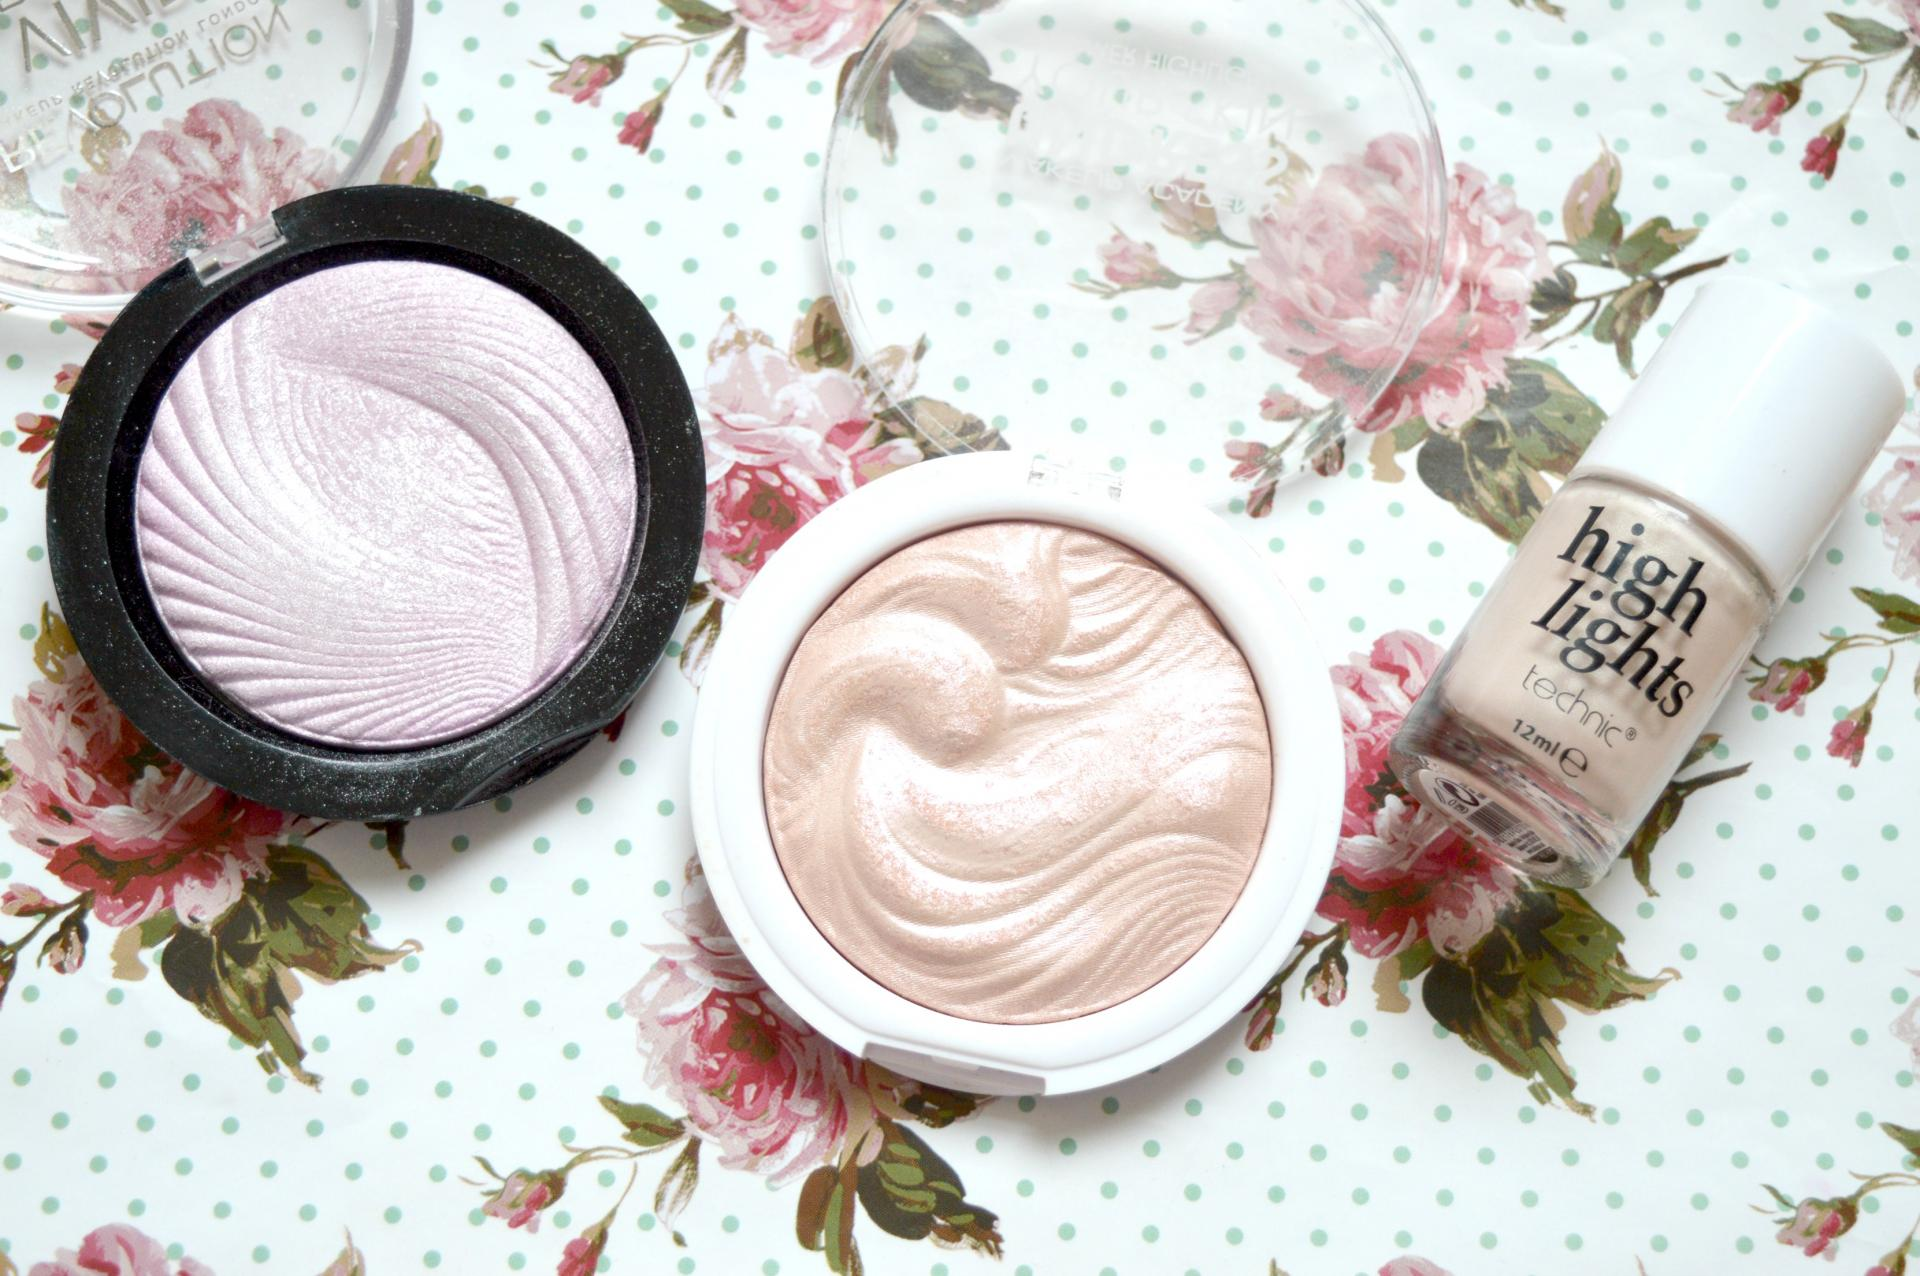 3 Great Highlighters For Less Than £5 | Makeup Revolution Vivid Baked Highlighter in Pink Lights, MUA Undress Your Skin Highlighting Powder in Pink Shimmer and Technic High Lights